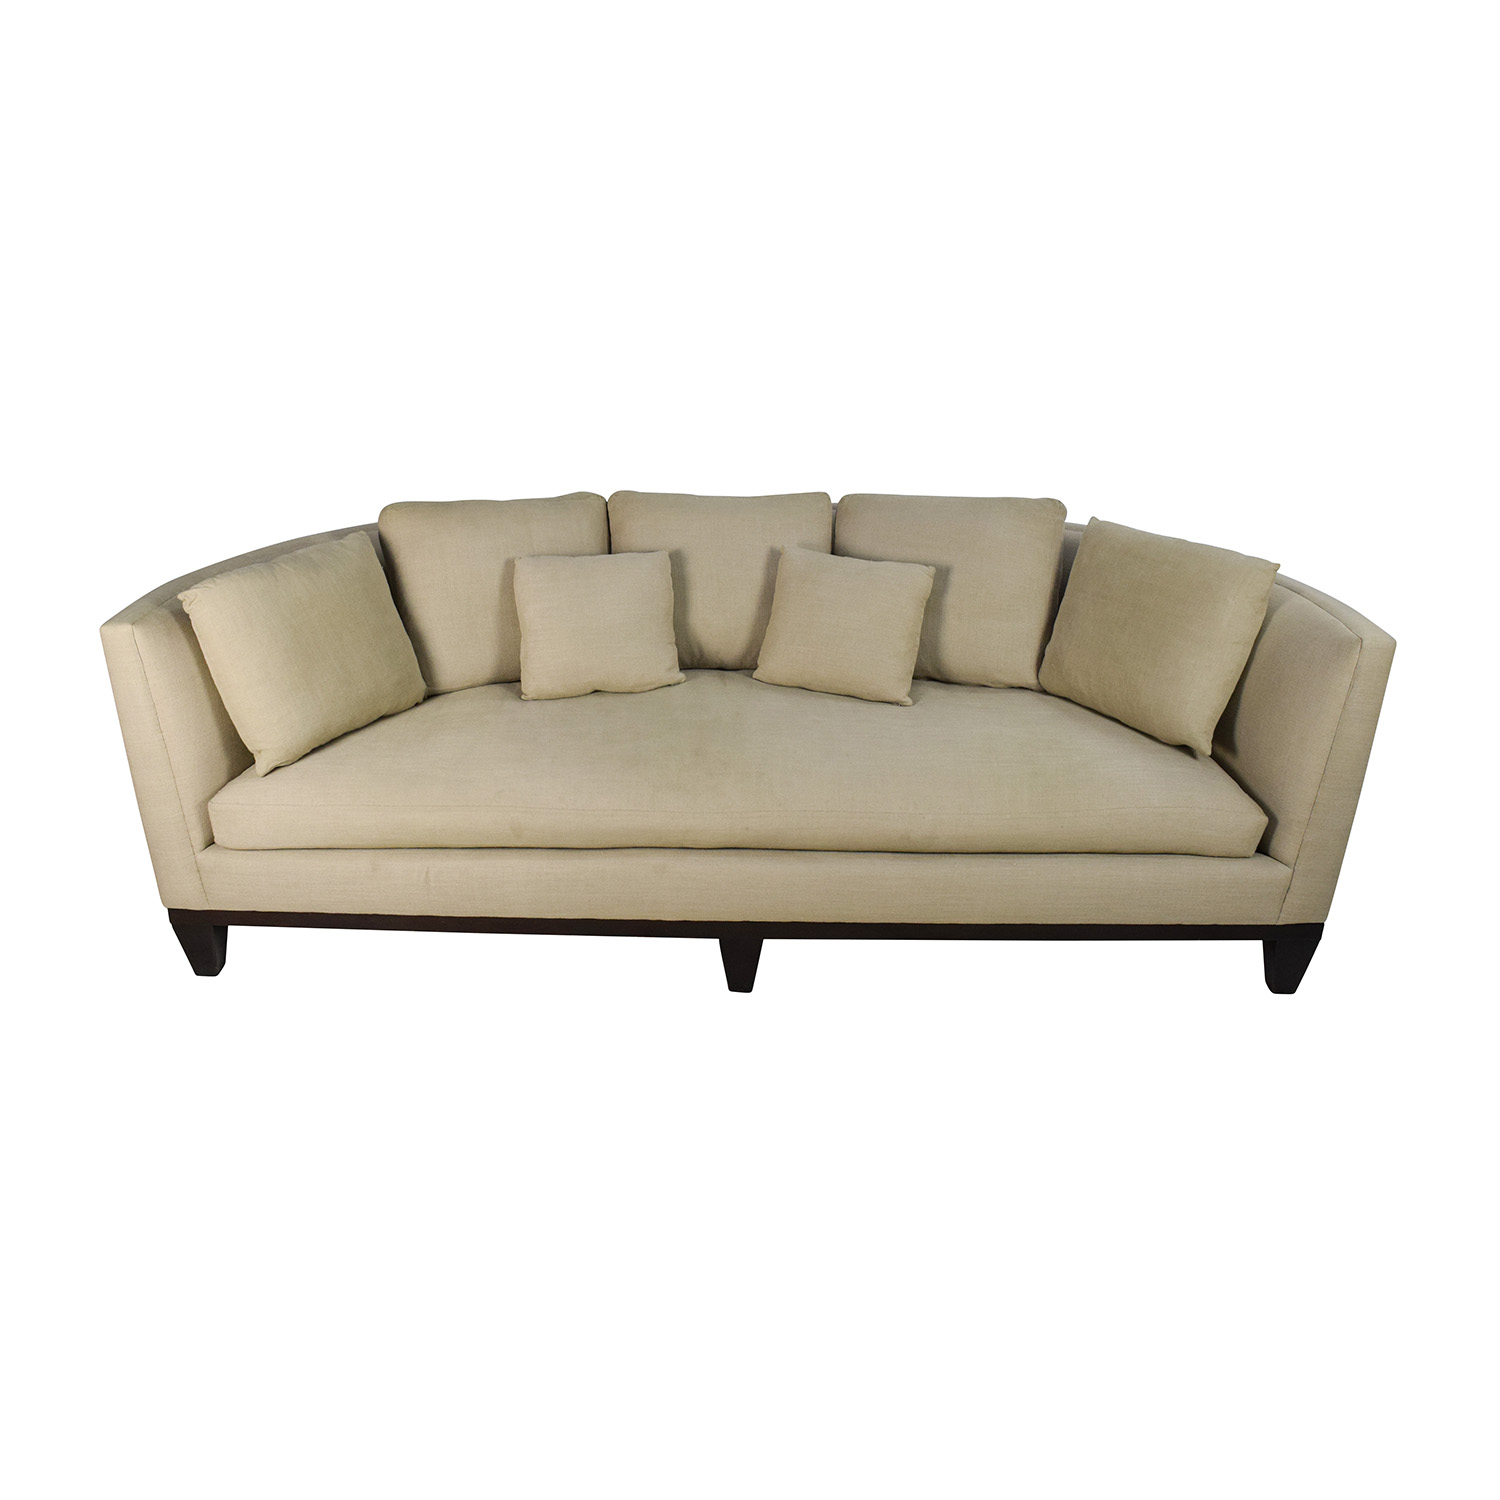 Barbara barry sofas 74 off ashley furniture kylun brown for Conversation sofa